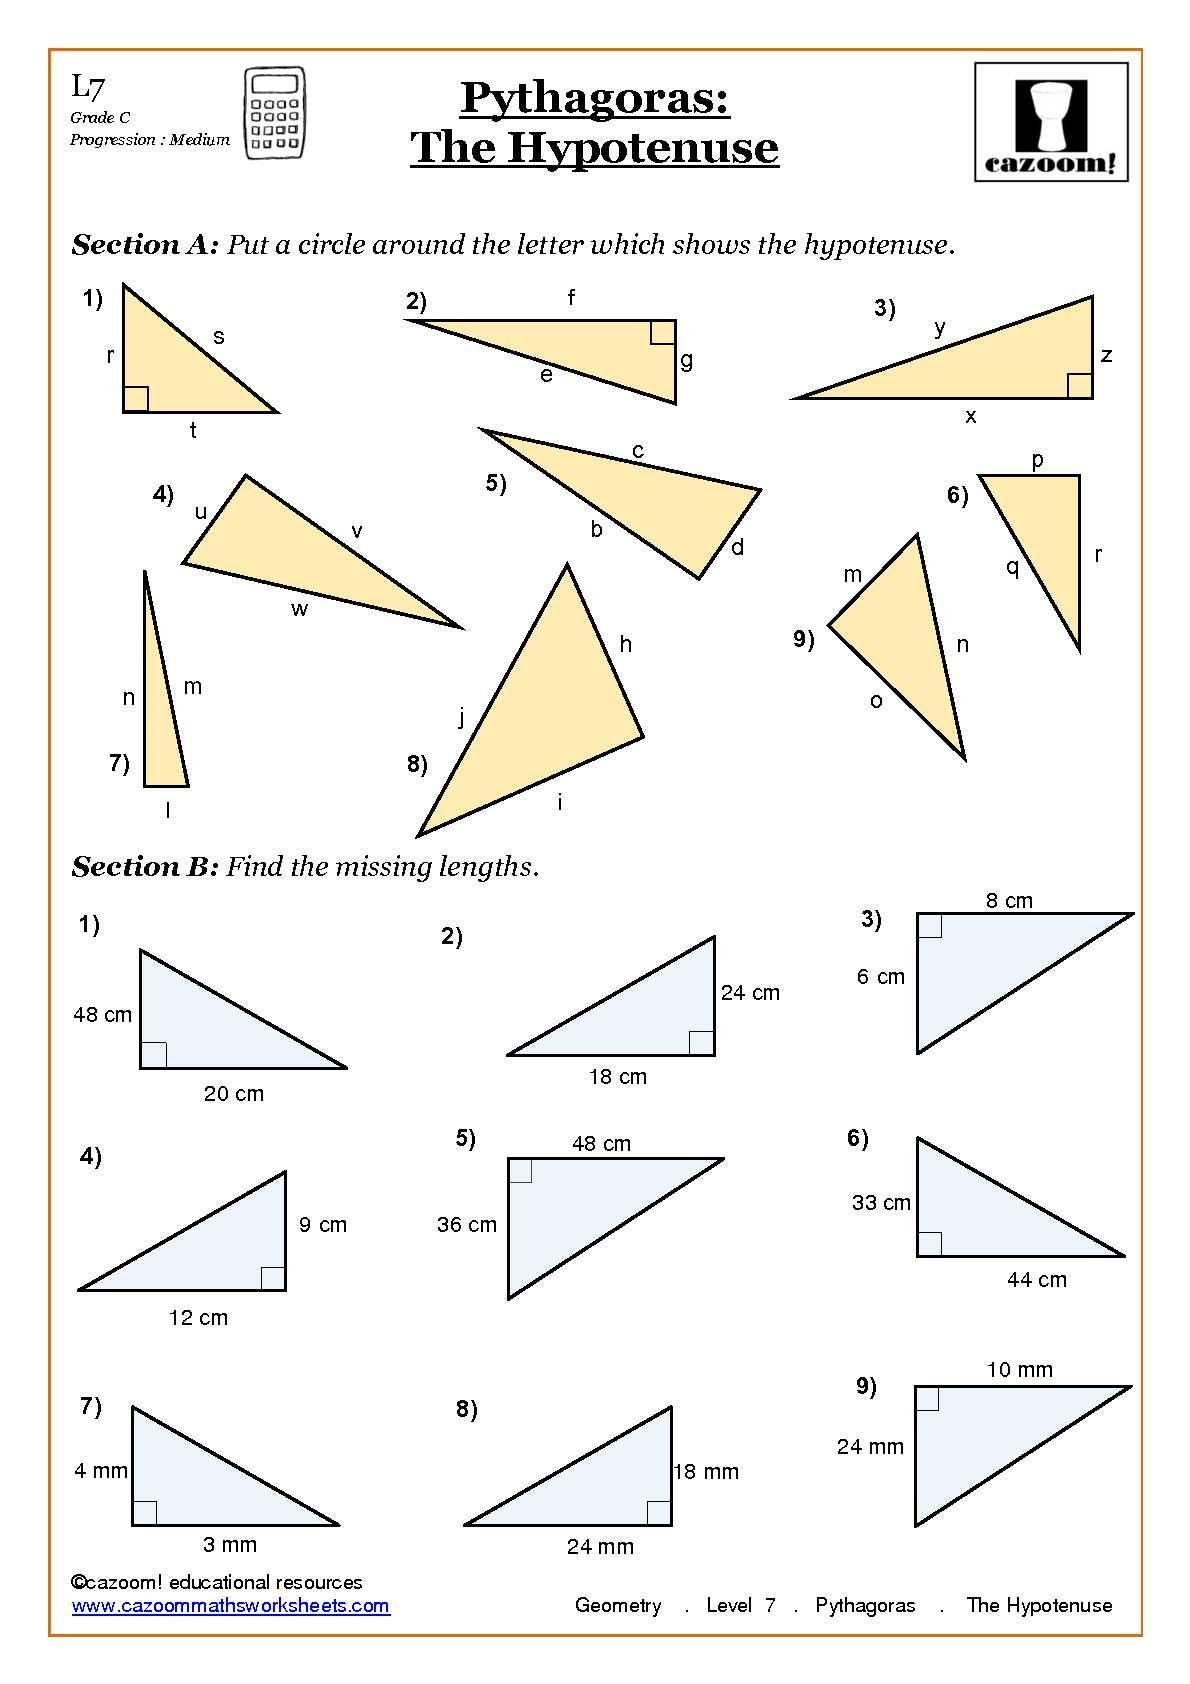 Worksheets Free Trigonometry Worksheets trigonometry and pythagoras worksheets geometry math worksheets